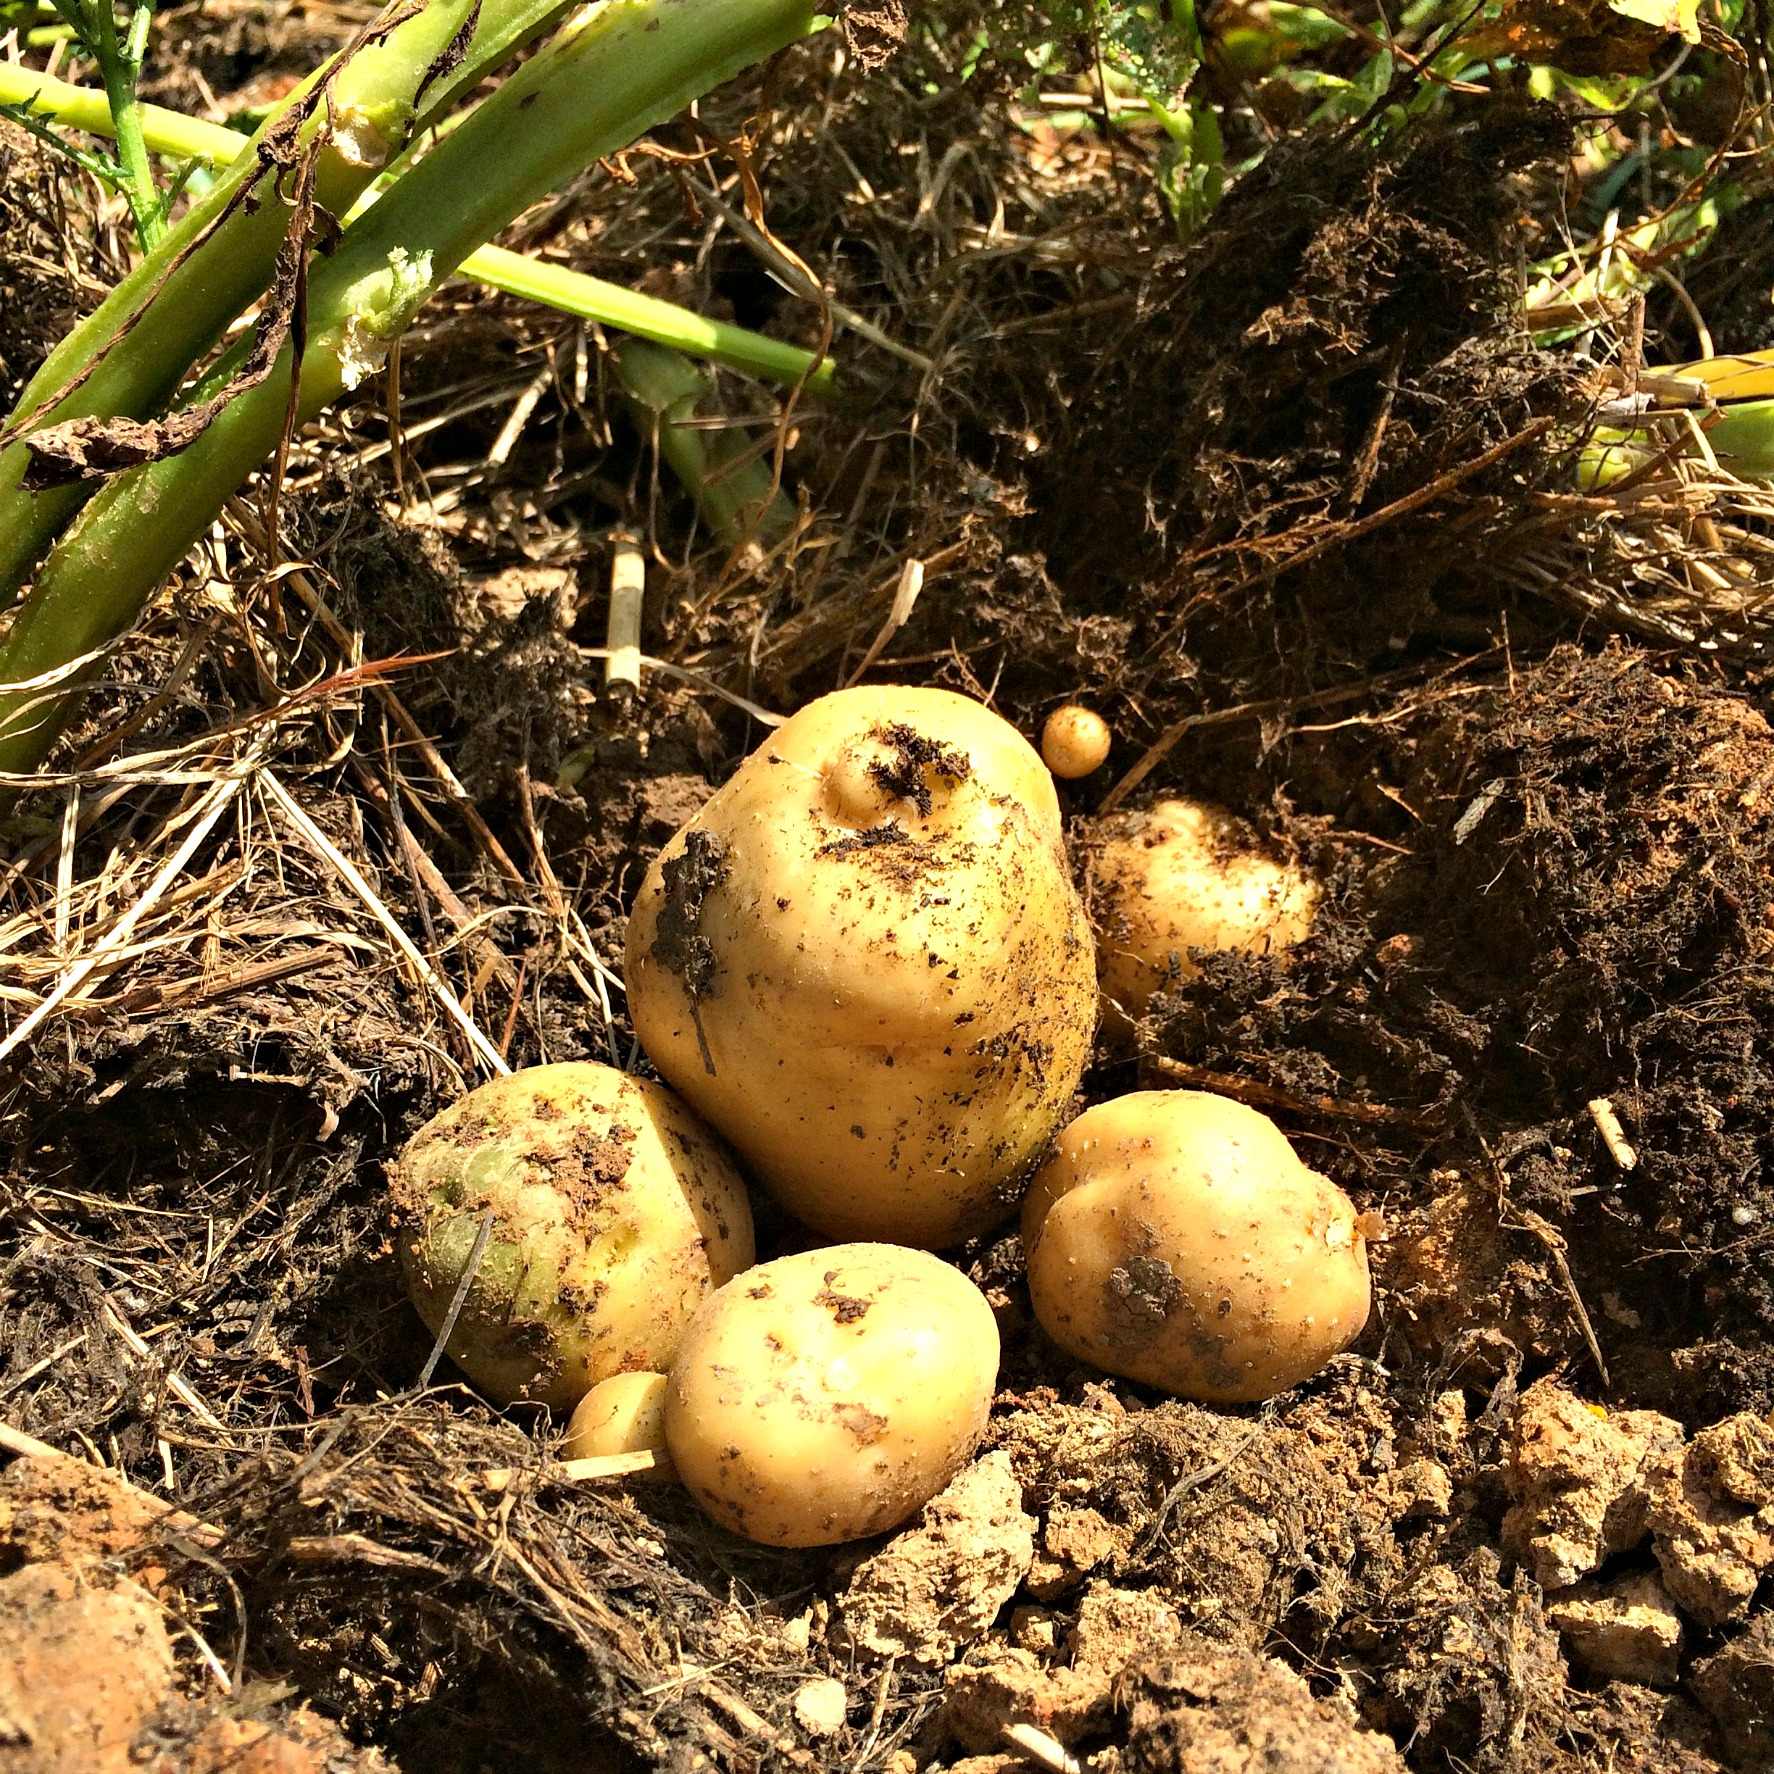 Weeds in flower beds with potato like roots -  Potatoes 9 2